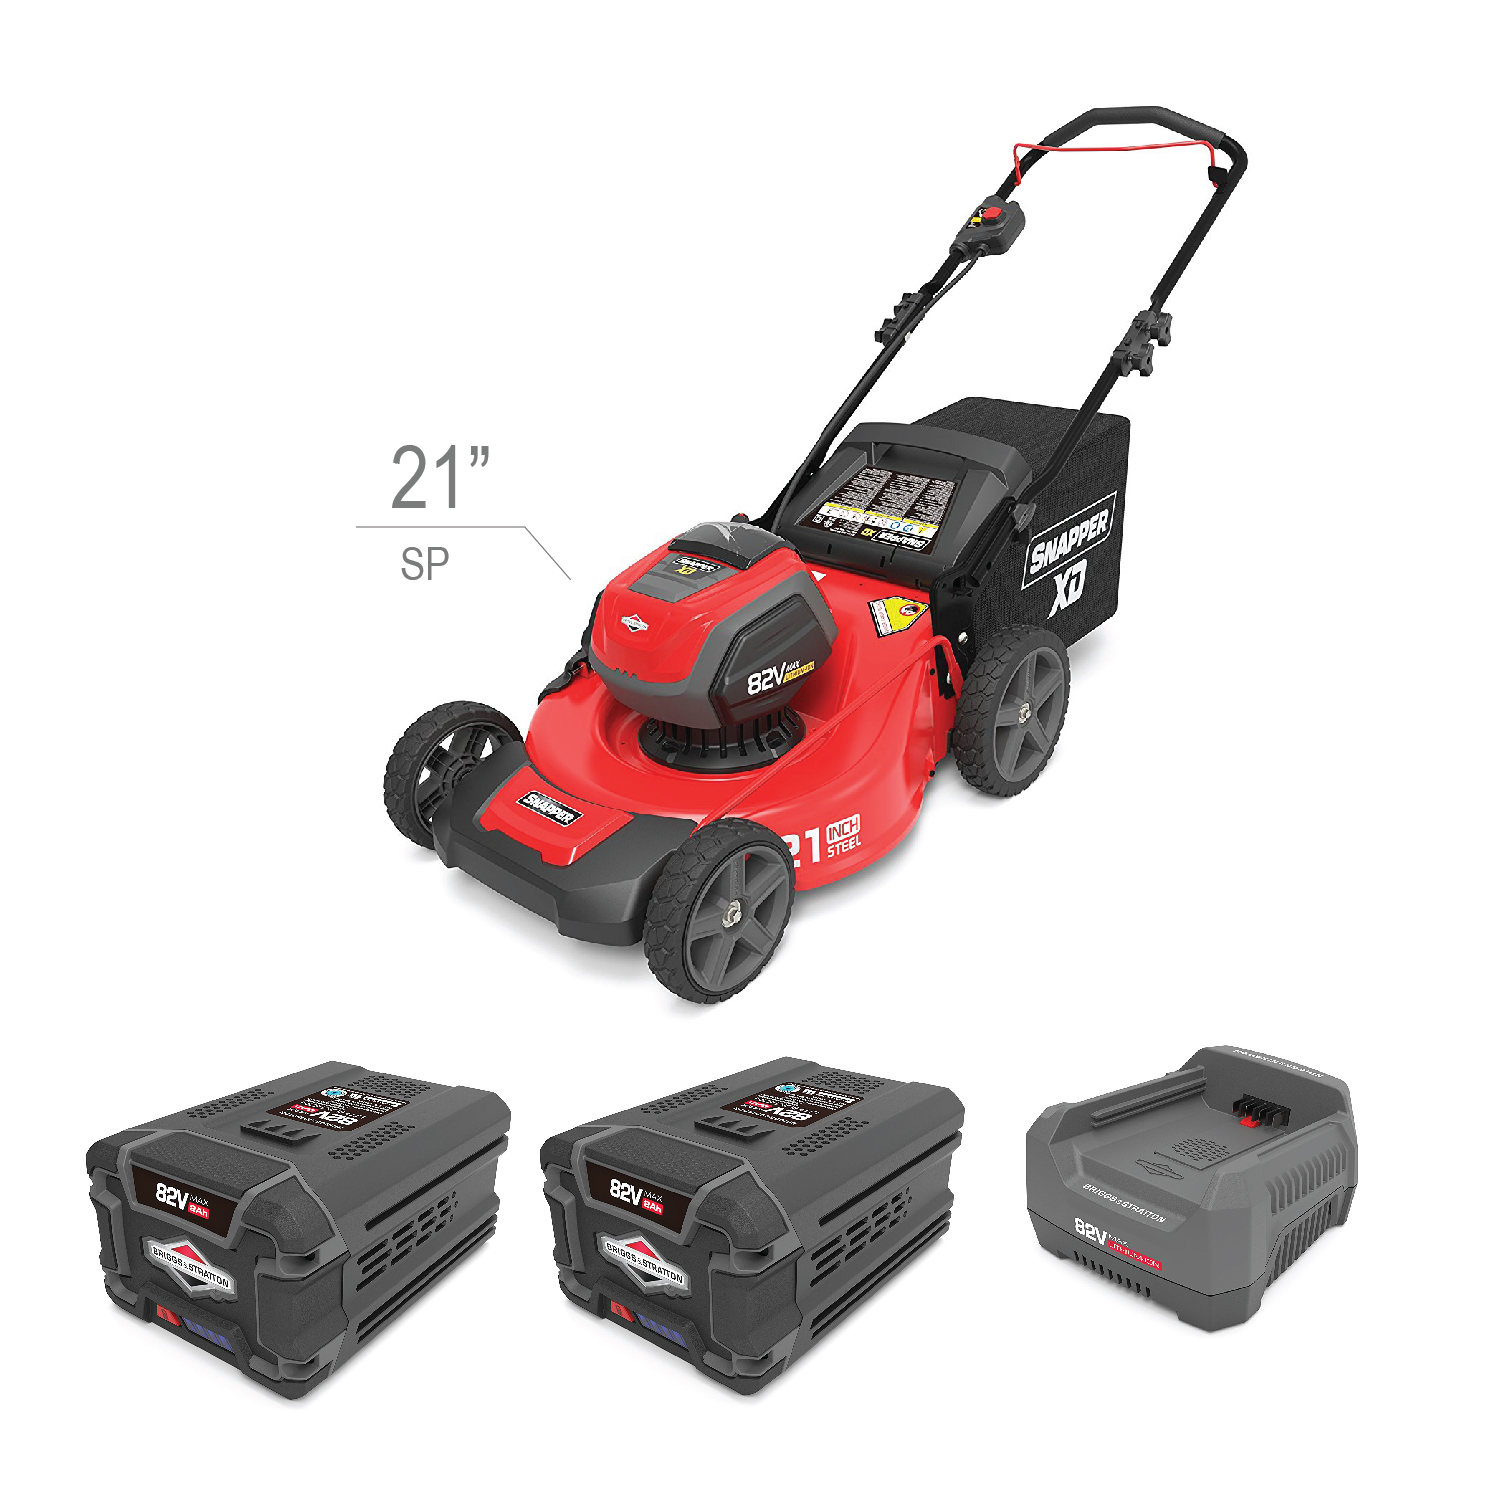 "Kit Walk (SP) Mower 21"" 82V Charger and two Batteries"